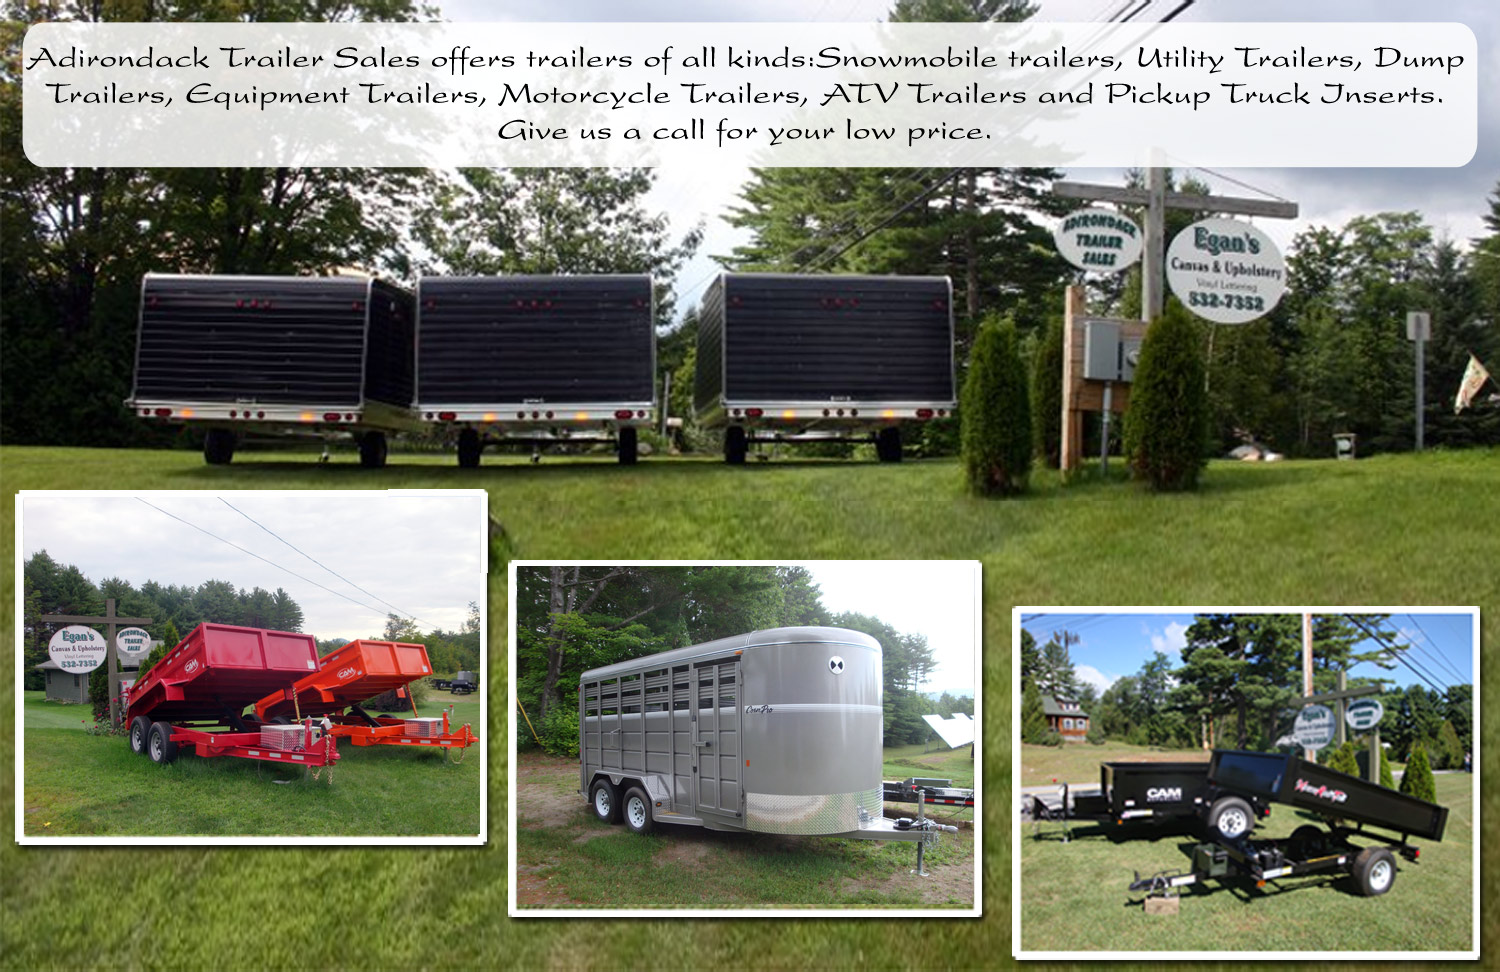 Snowmobile trailers,Utility trailers,Dump trailers,Equipment trailers,Car haulers,Motorcycle trailers,ATV trailers,Pickup truck inserts